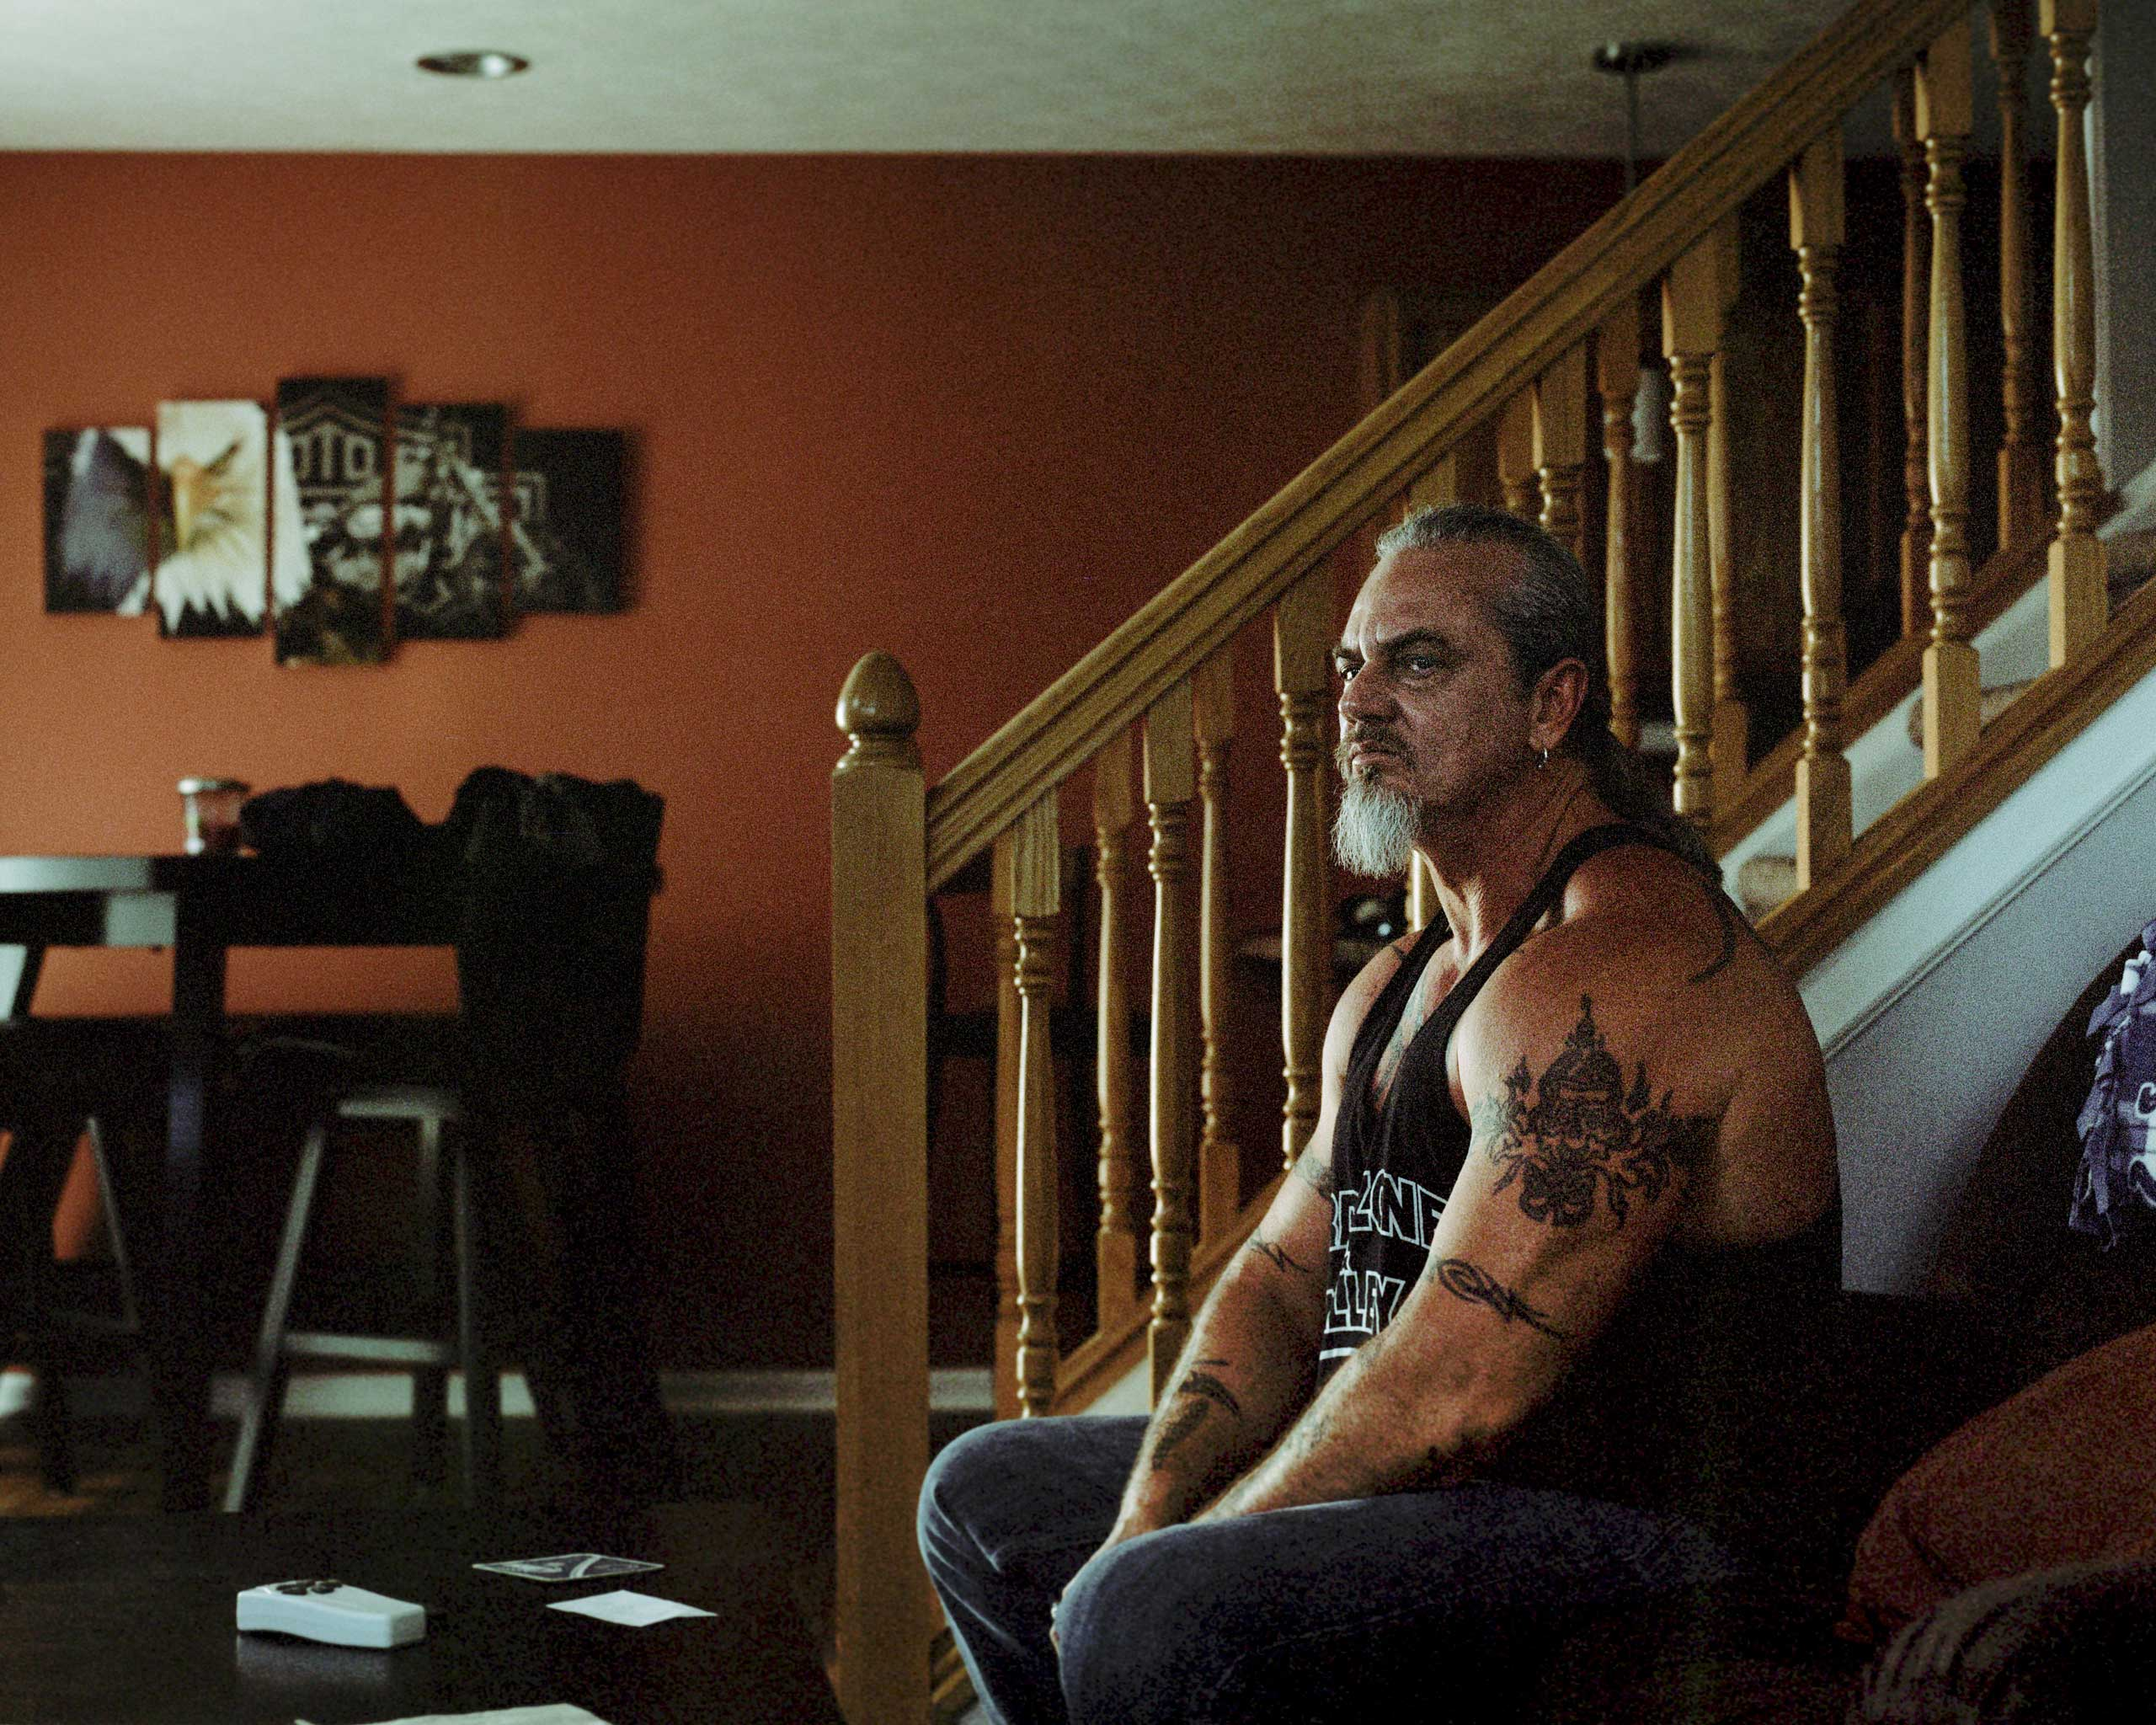 Rexnord machinist Brian Bousum, 51, at a friend's home in Indianapolis; after nearly 23 years, Bousum's job is being outsourced to Mexico